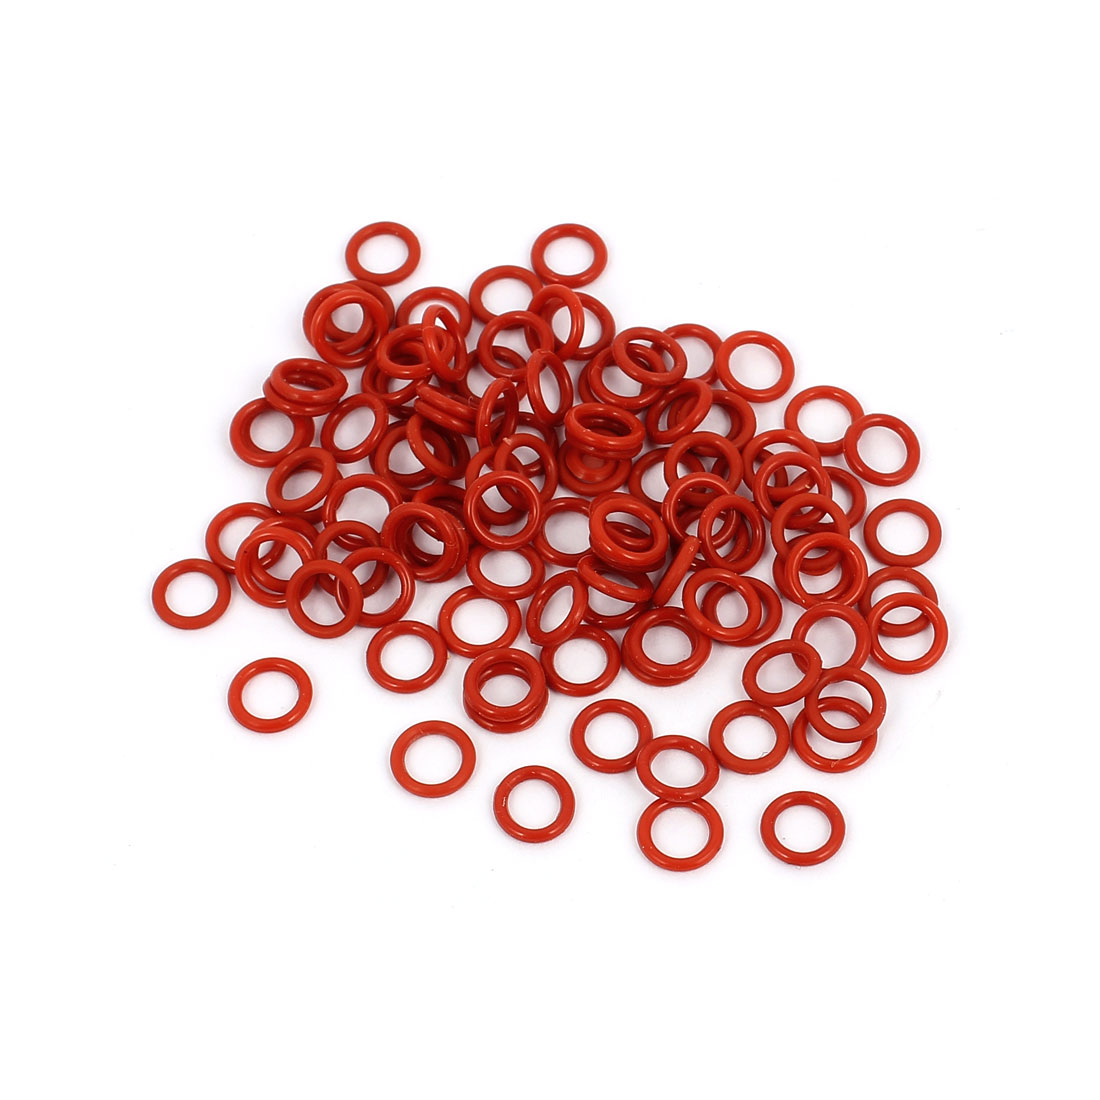 100Pcs 6mm x 1mm Rubber O-rings NBR Heat Resistant Sealing Ring Grommets Red